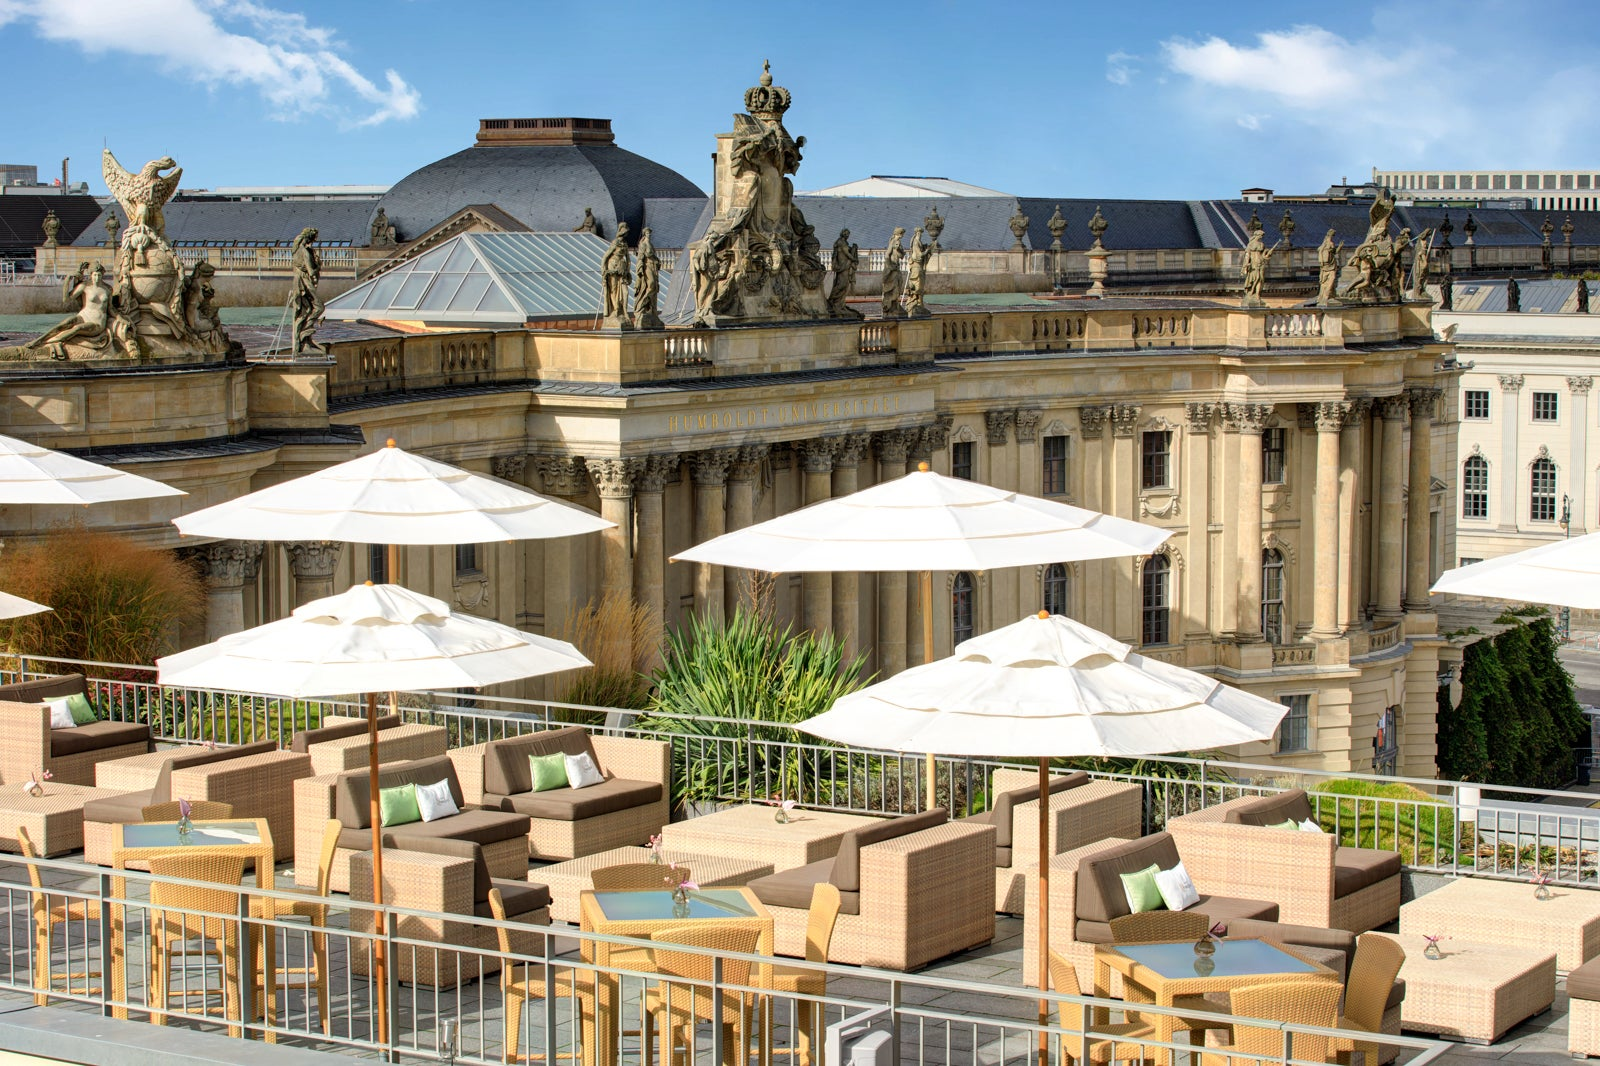 Berlin hotels: 10 of the best places to stay